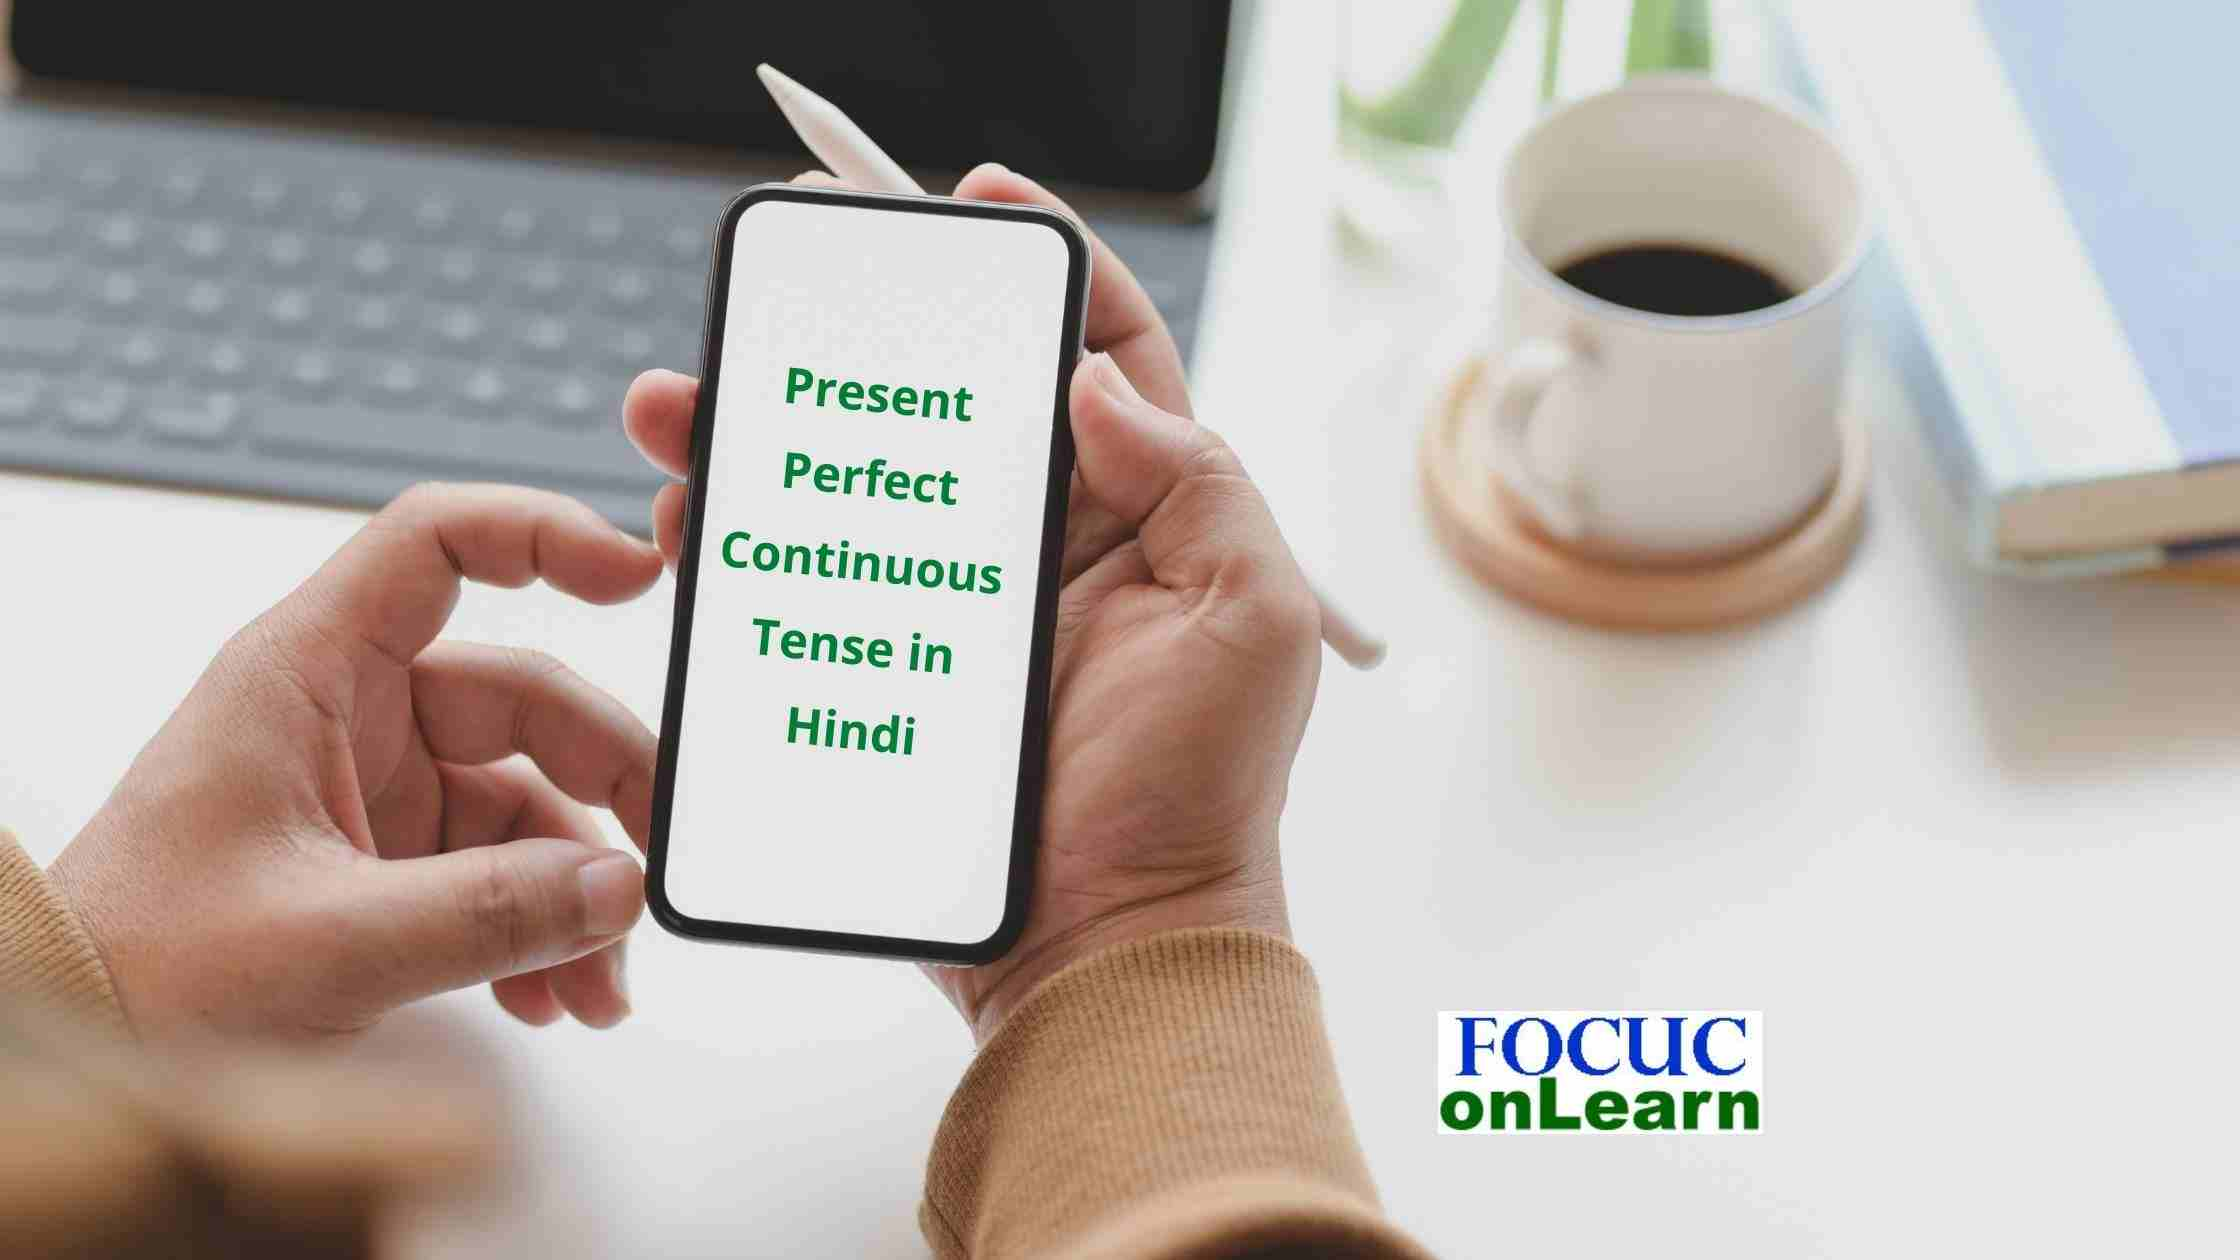 Present Perfect Continuous Tense in Hindi